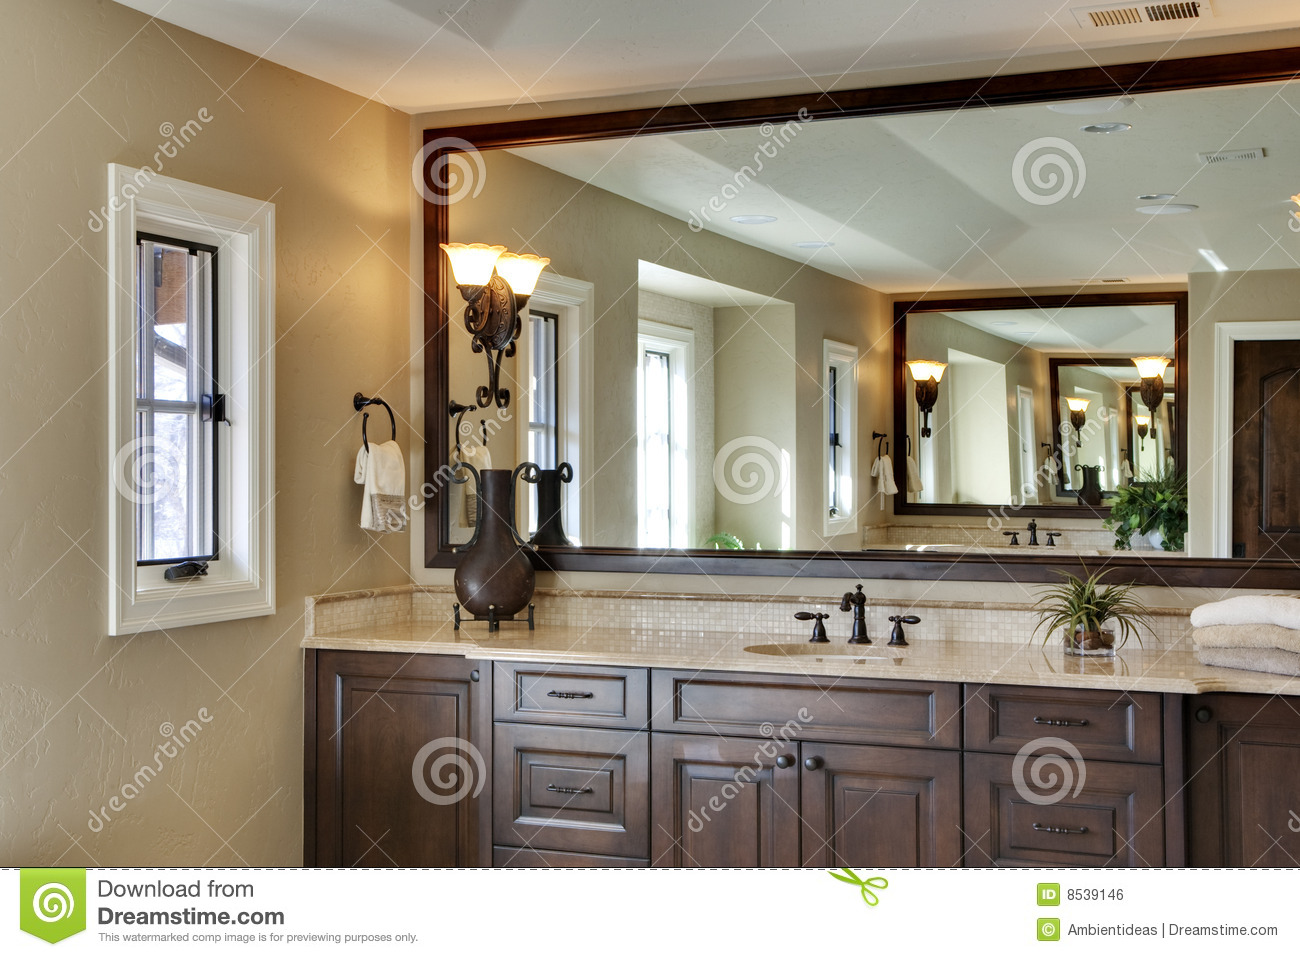 bathroom with large mirror royalty free stock image image 8539146